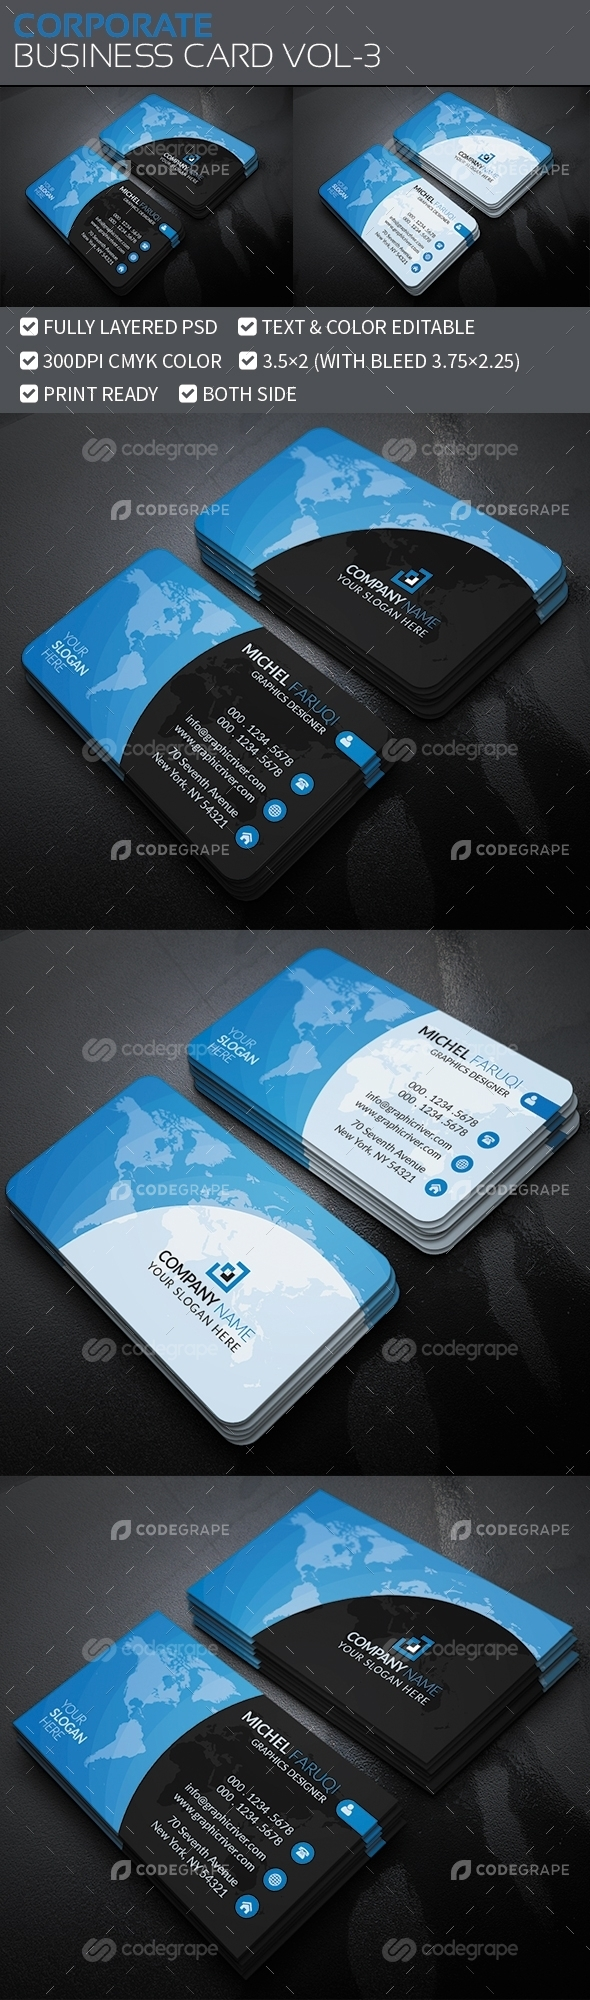 Corporate Business Card Vol-3